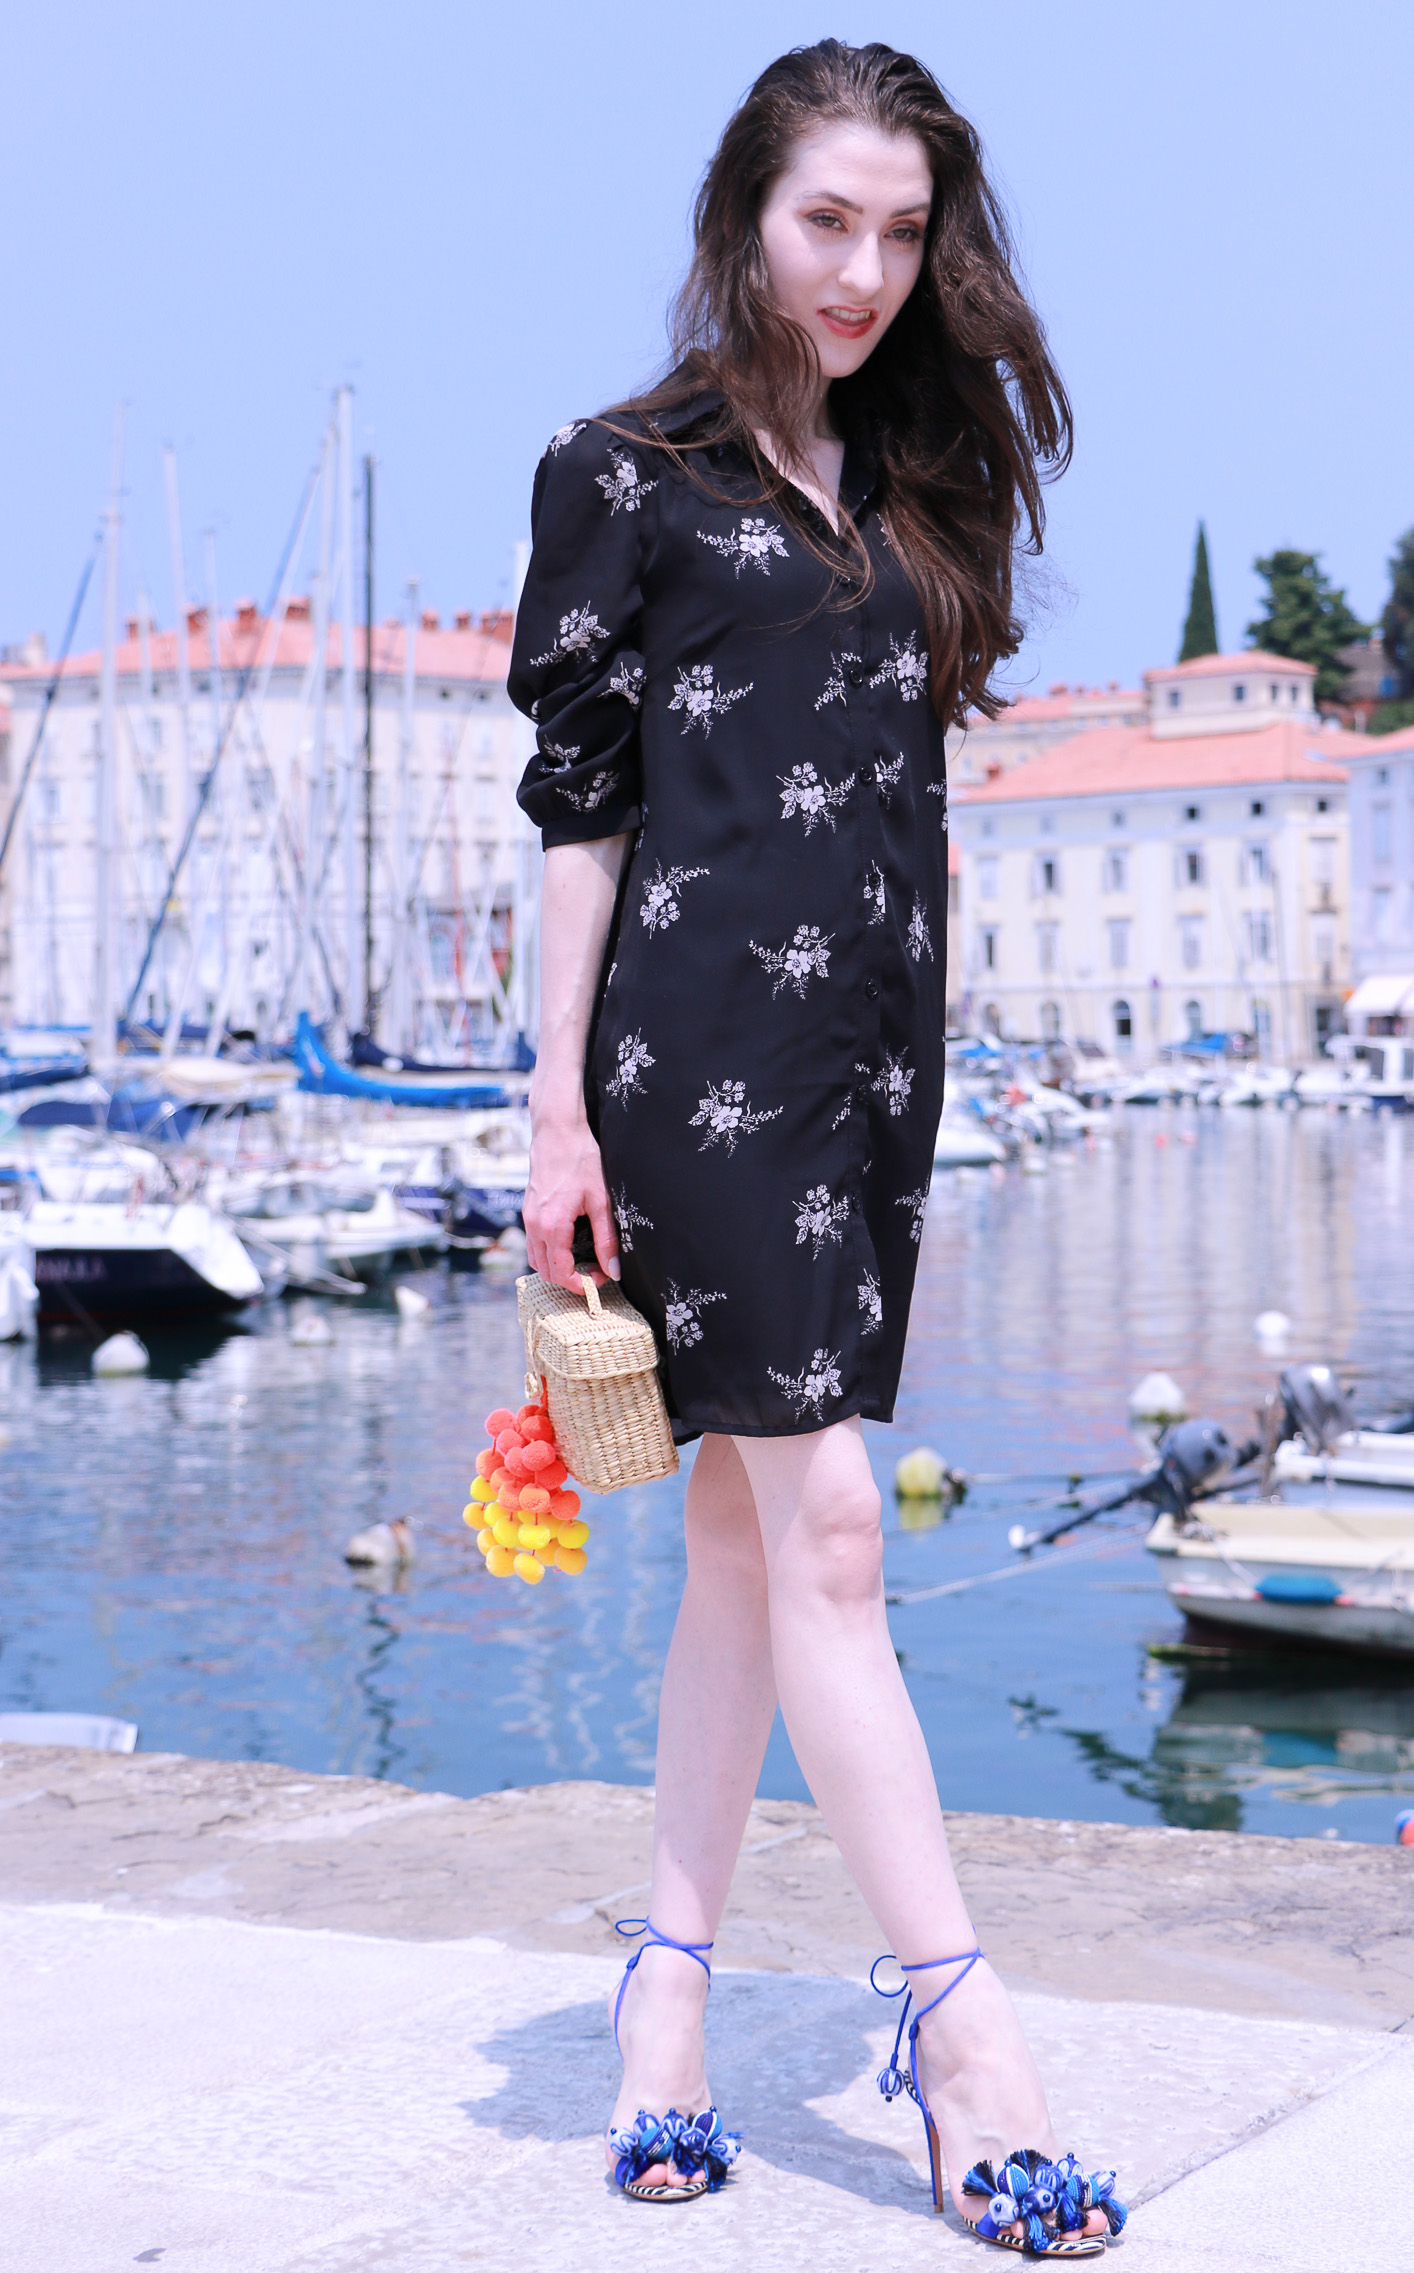 Fashion blogger Veronika Lipar of Brunette From Wall Street on how to wear floral shirt dress this summer